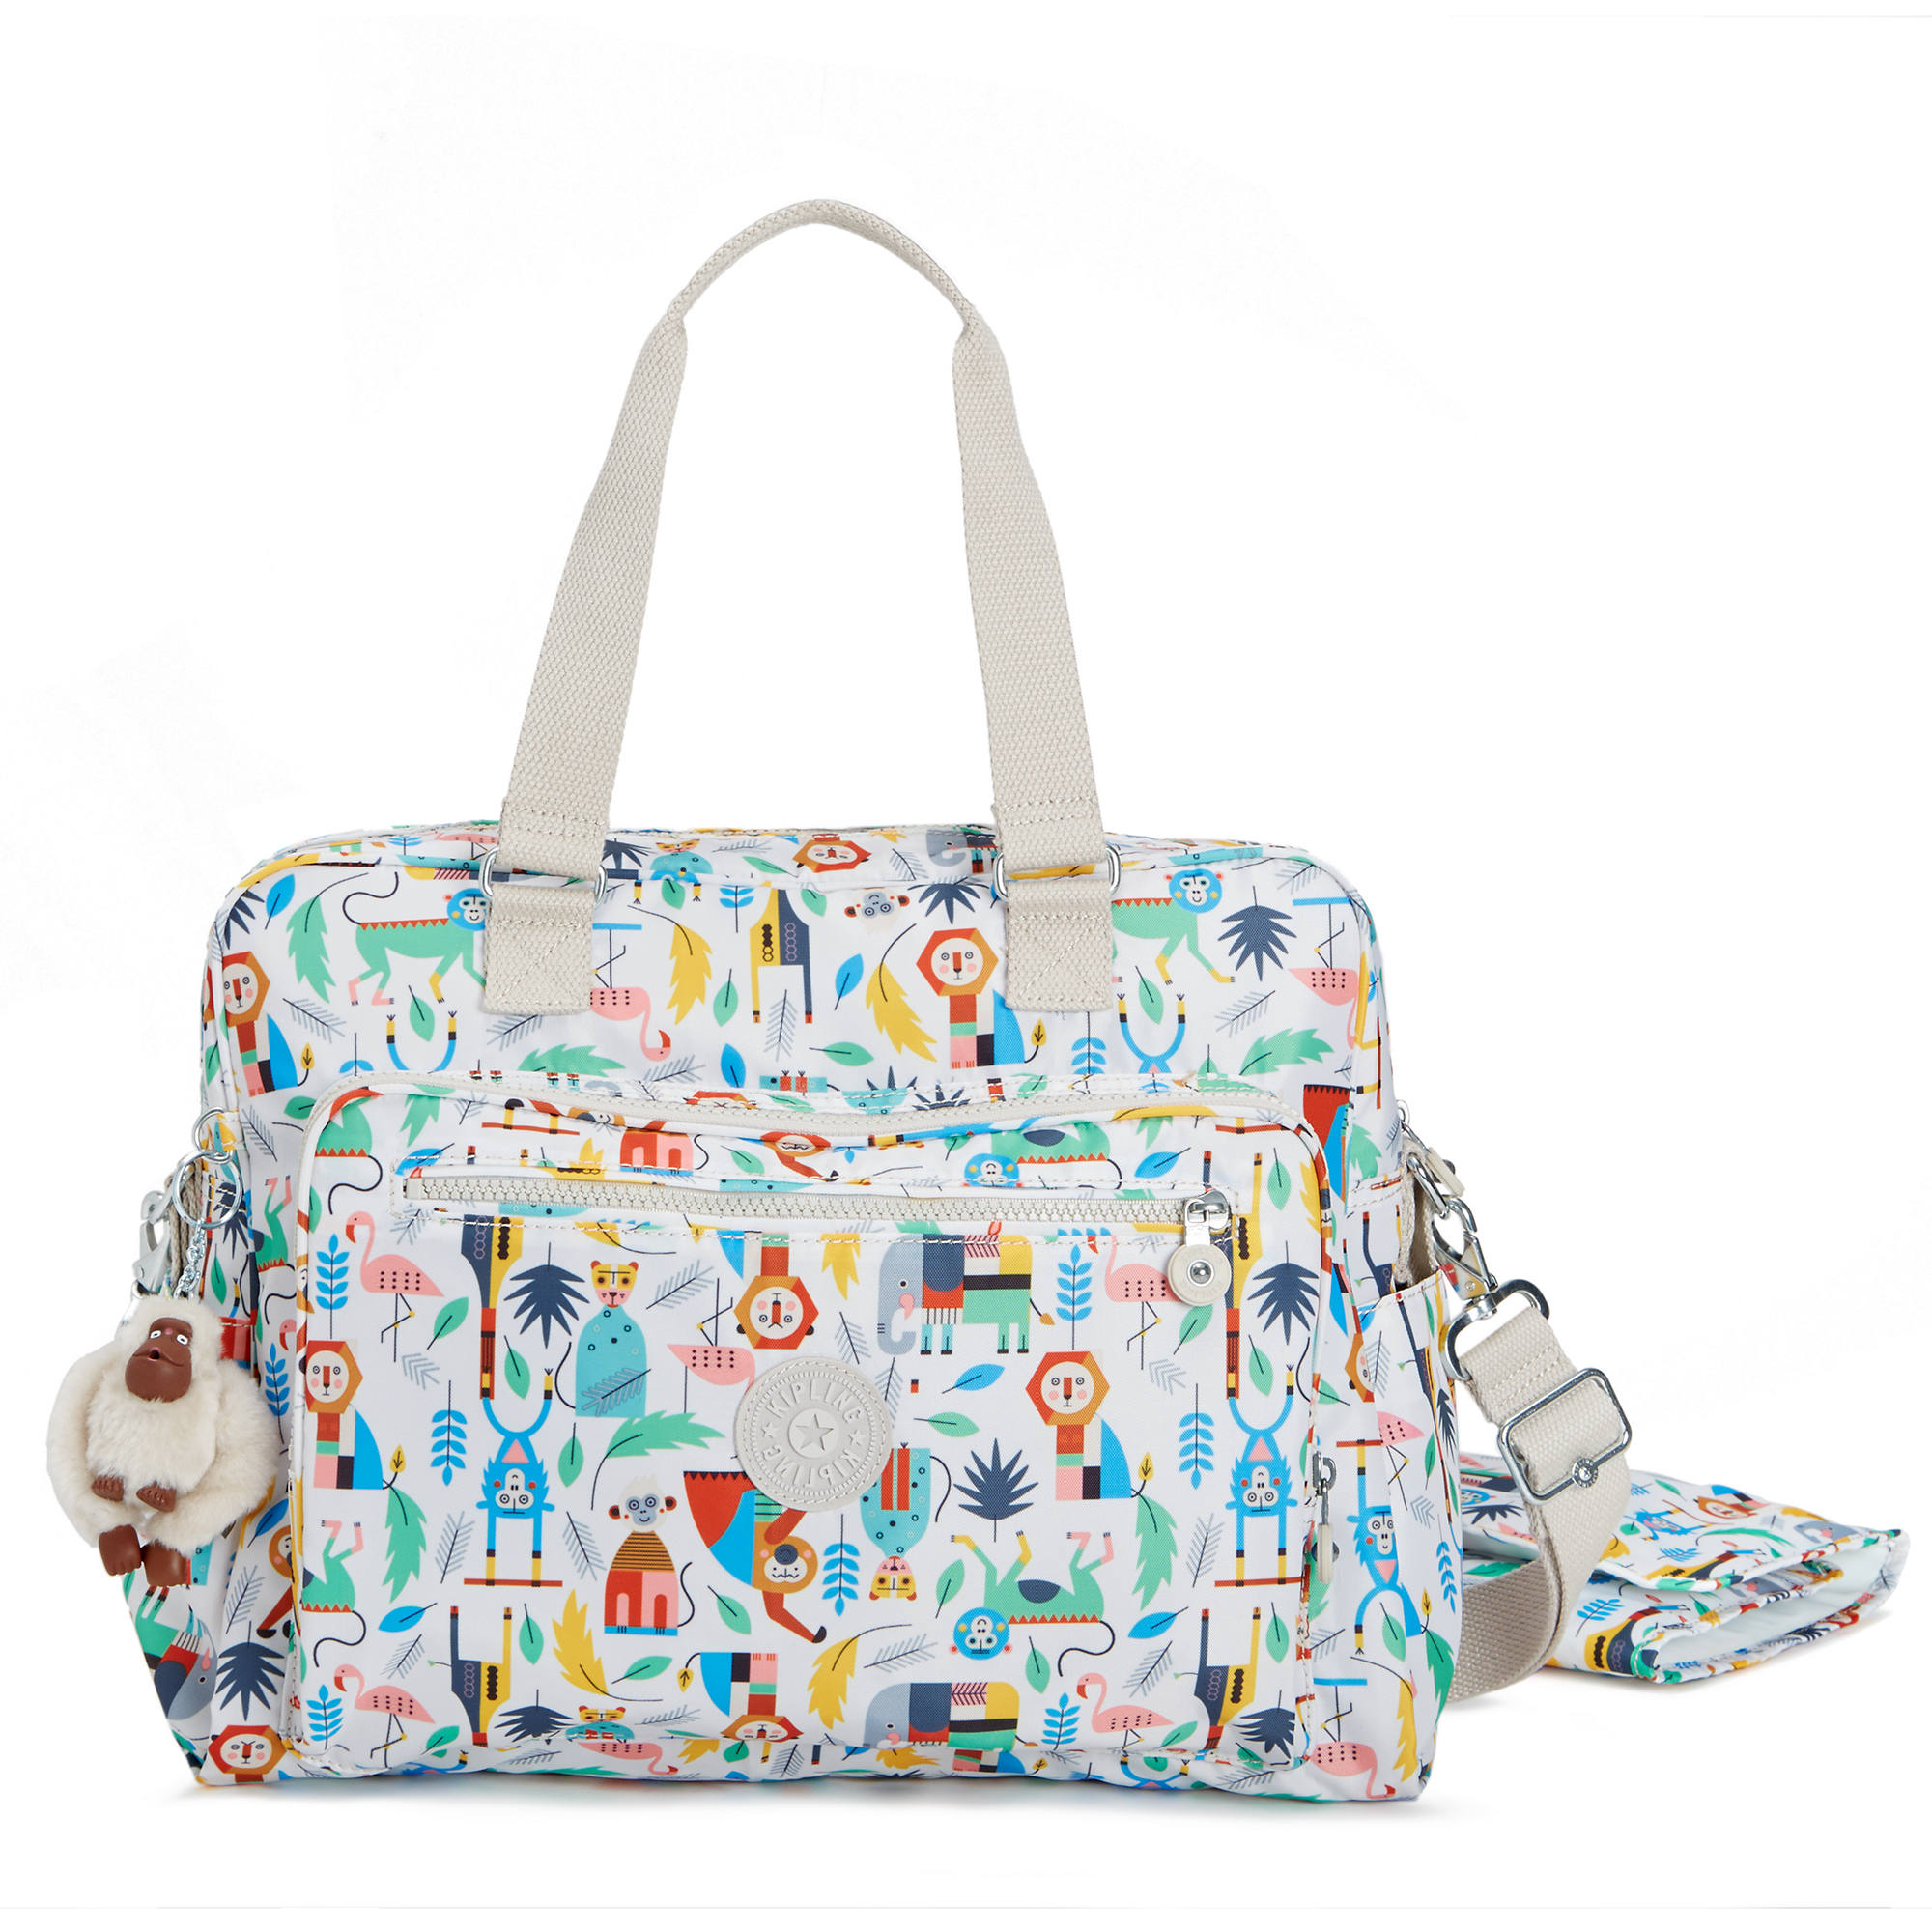 Canvas tote bags on wheels - Alanna Printed Diaper Bag